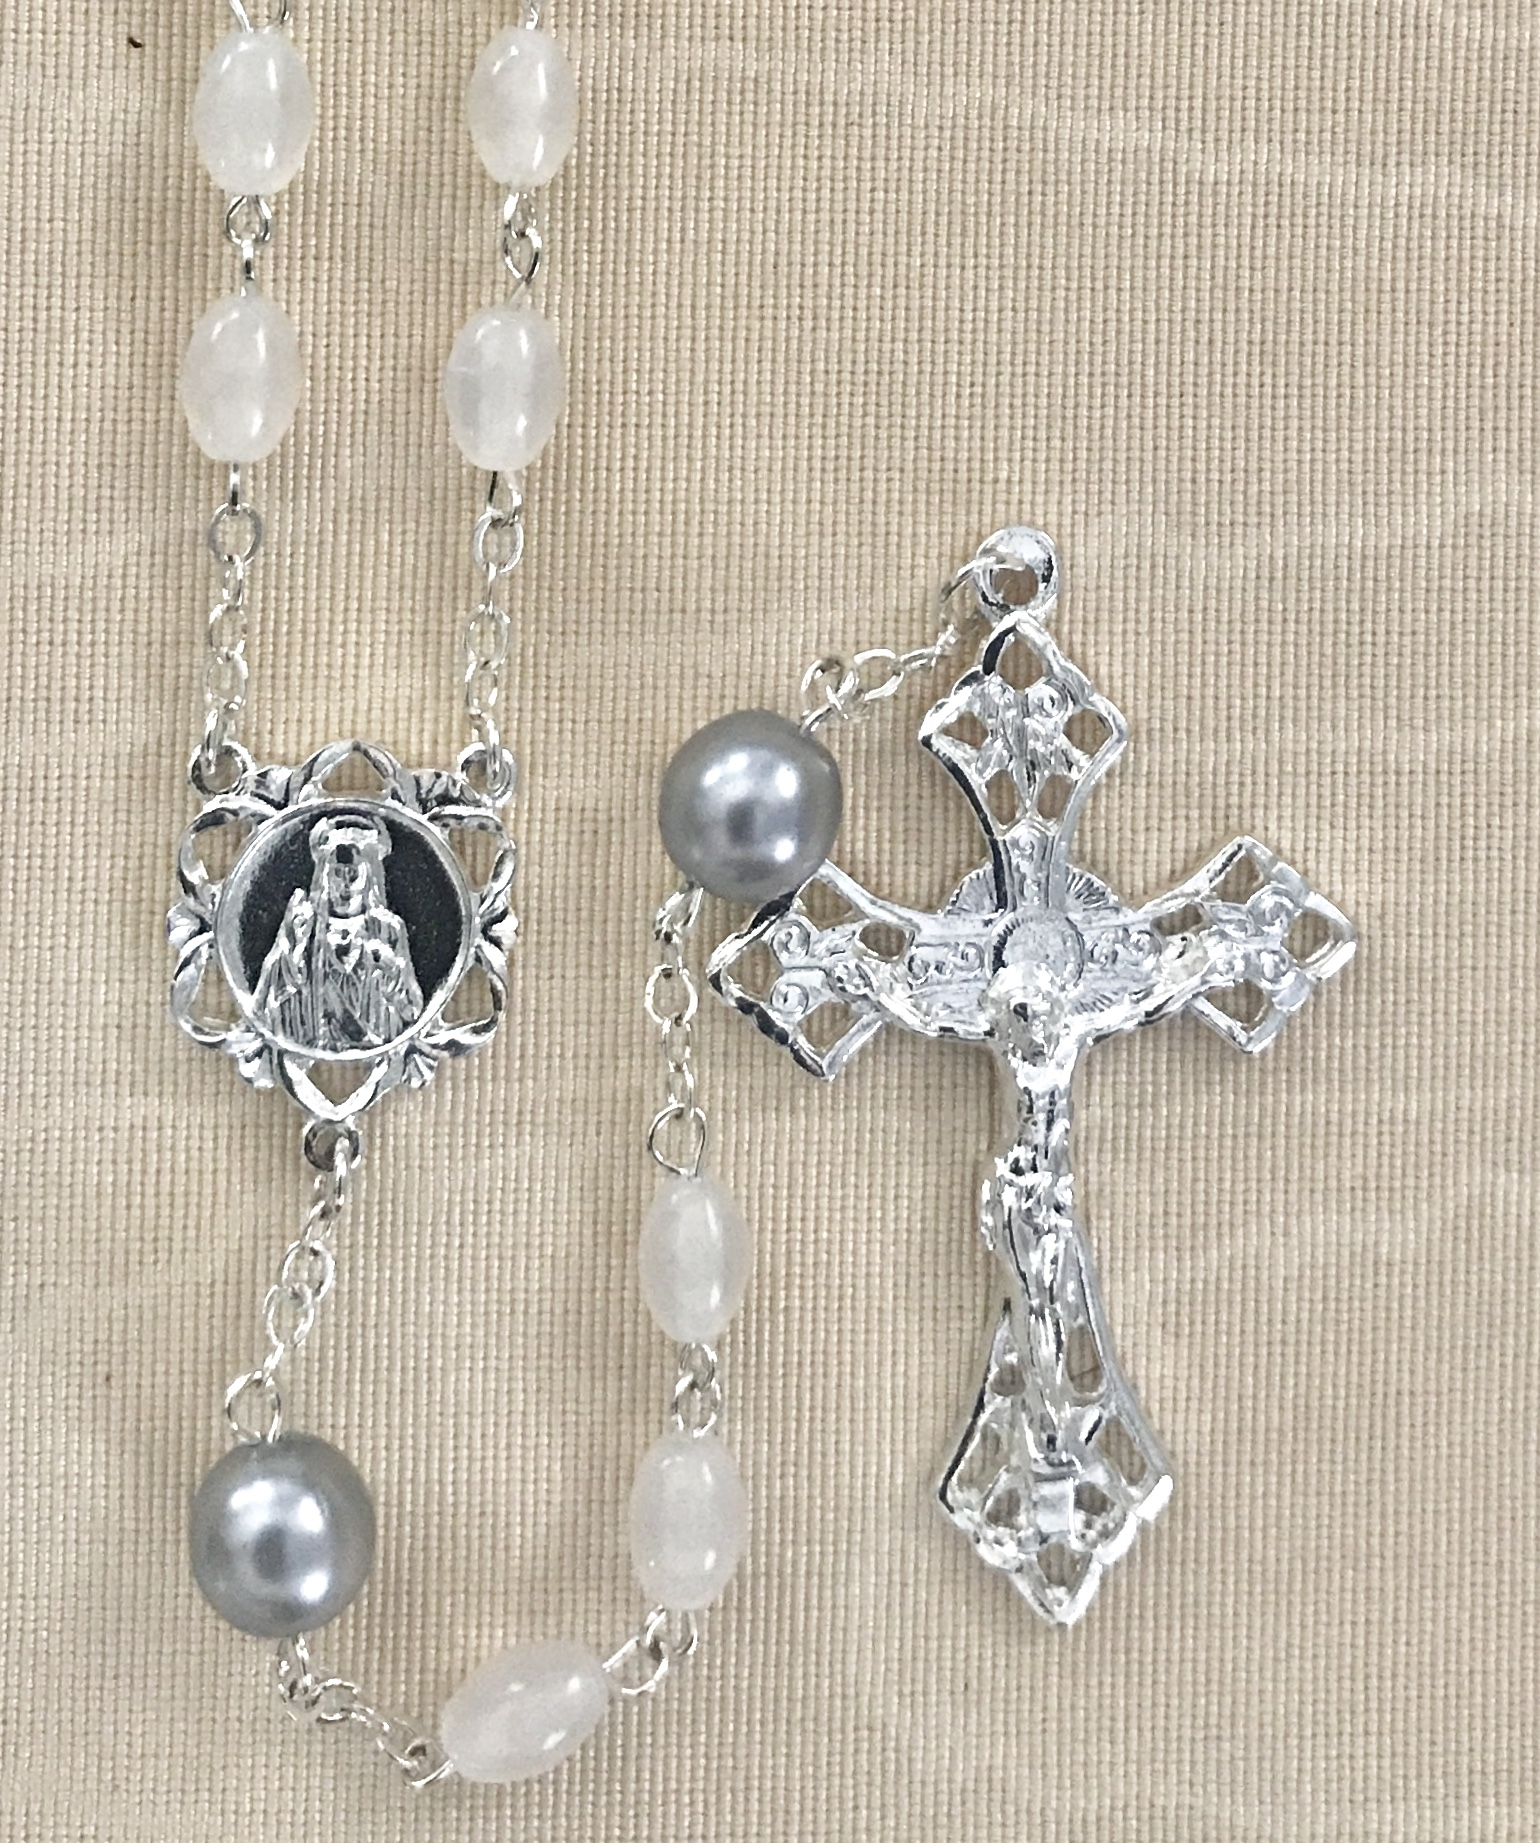 6x8mm PEARL WITH SILVER OUR FATHER BEADS STERLING SILVER PLATED ROSARY GIFT BOXED